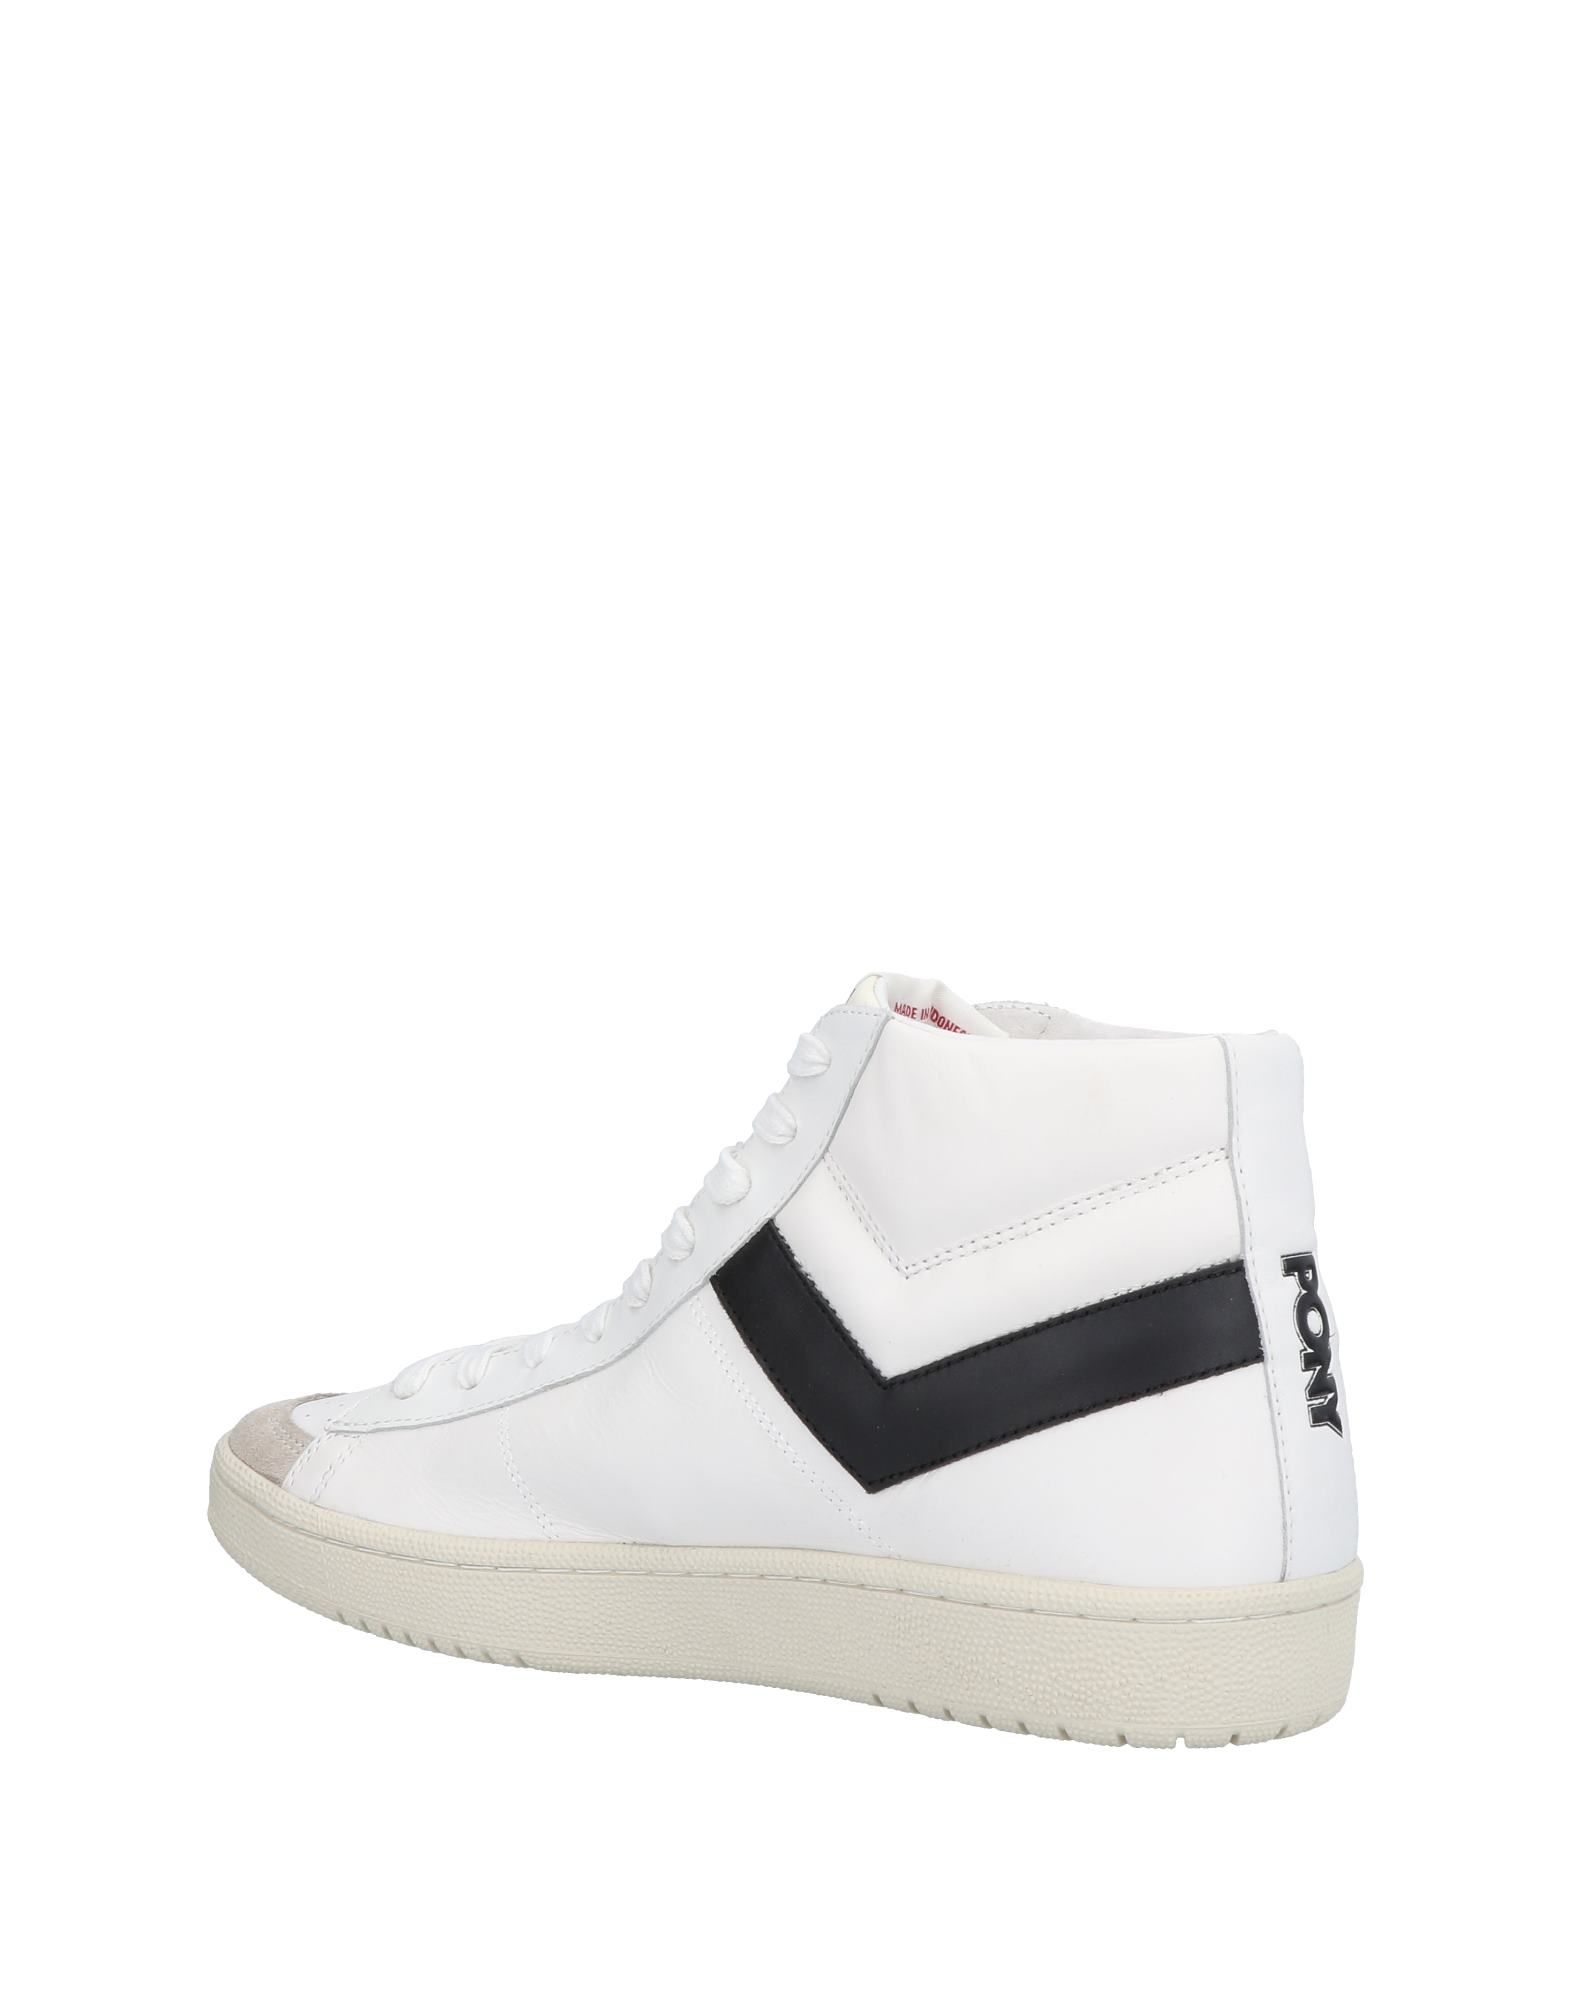 Pony Sneakers - Australia Men Pony Sneakers online on  Australia - - 11461792SG a42af9